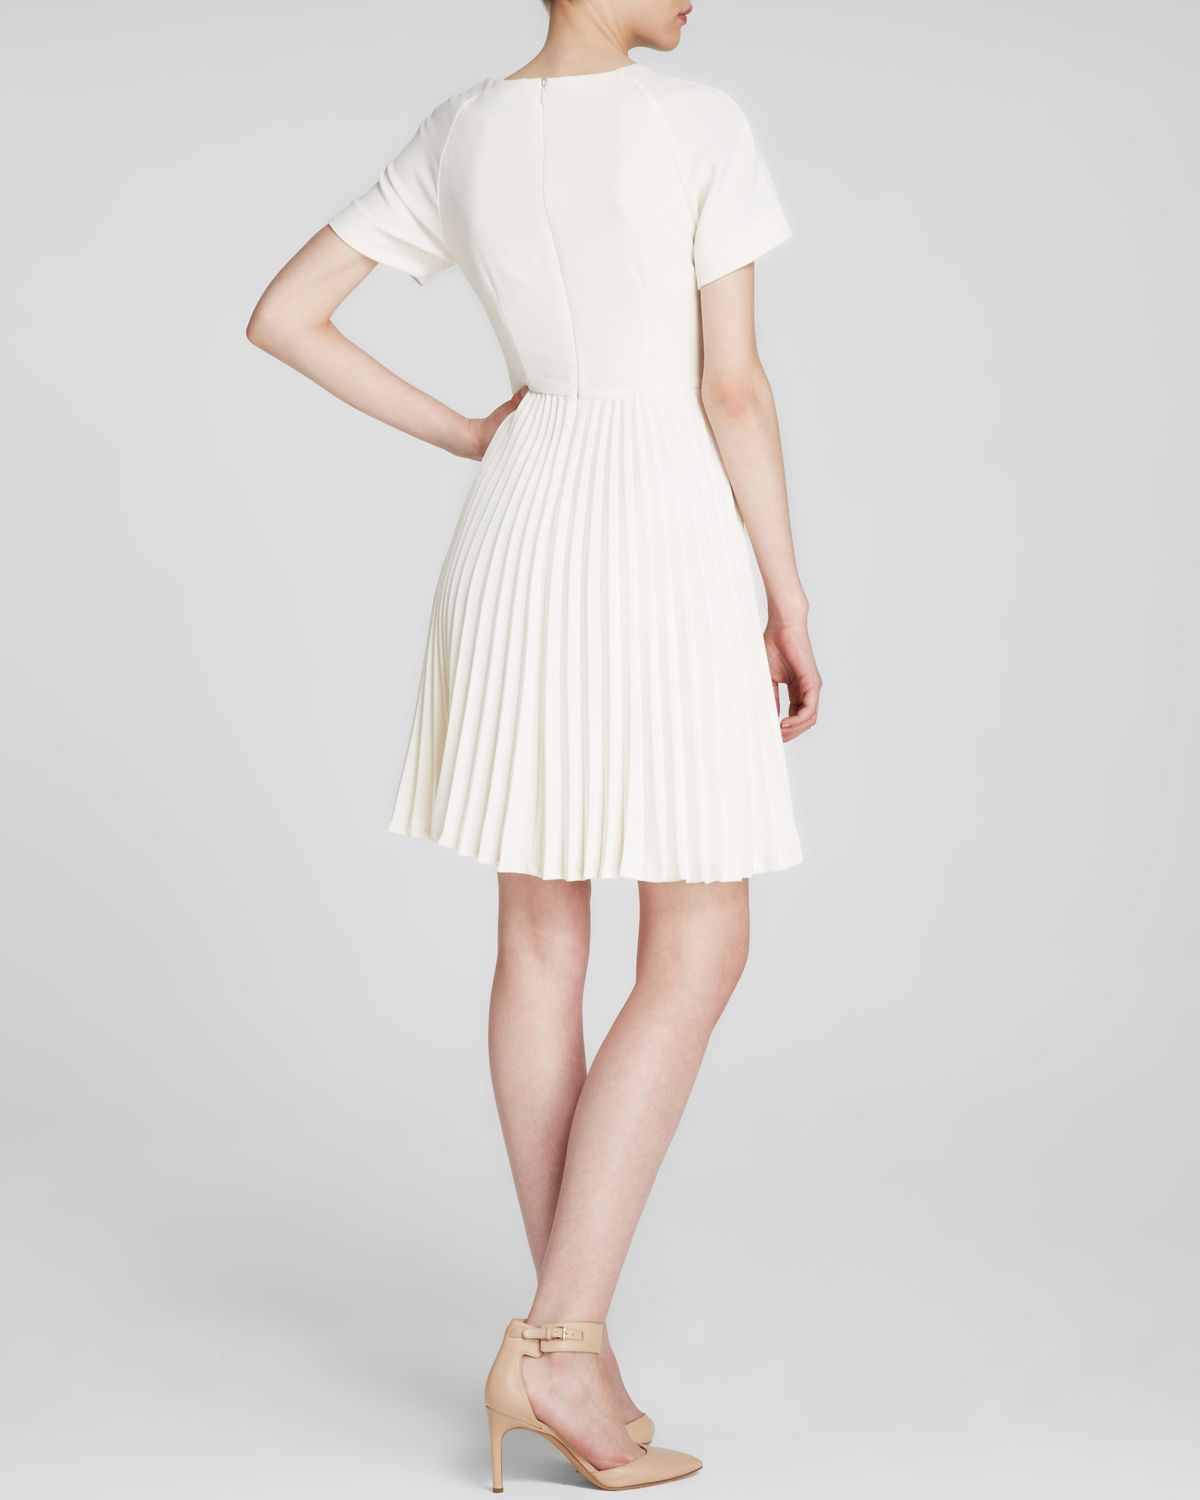 Trina turk Dress - Estrella Short Sleeve Pleated Skirt in White | Lyst